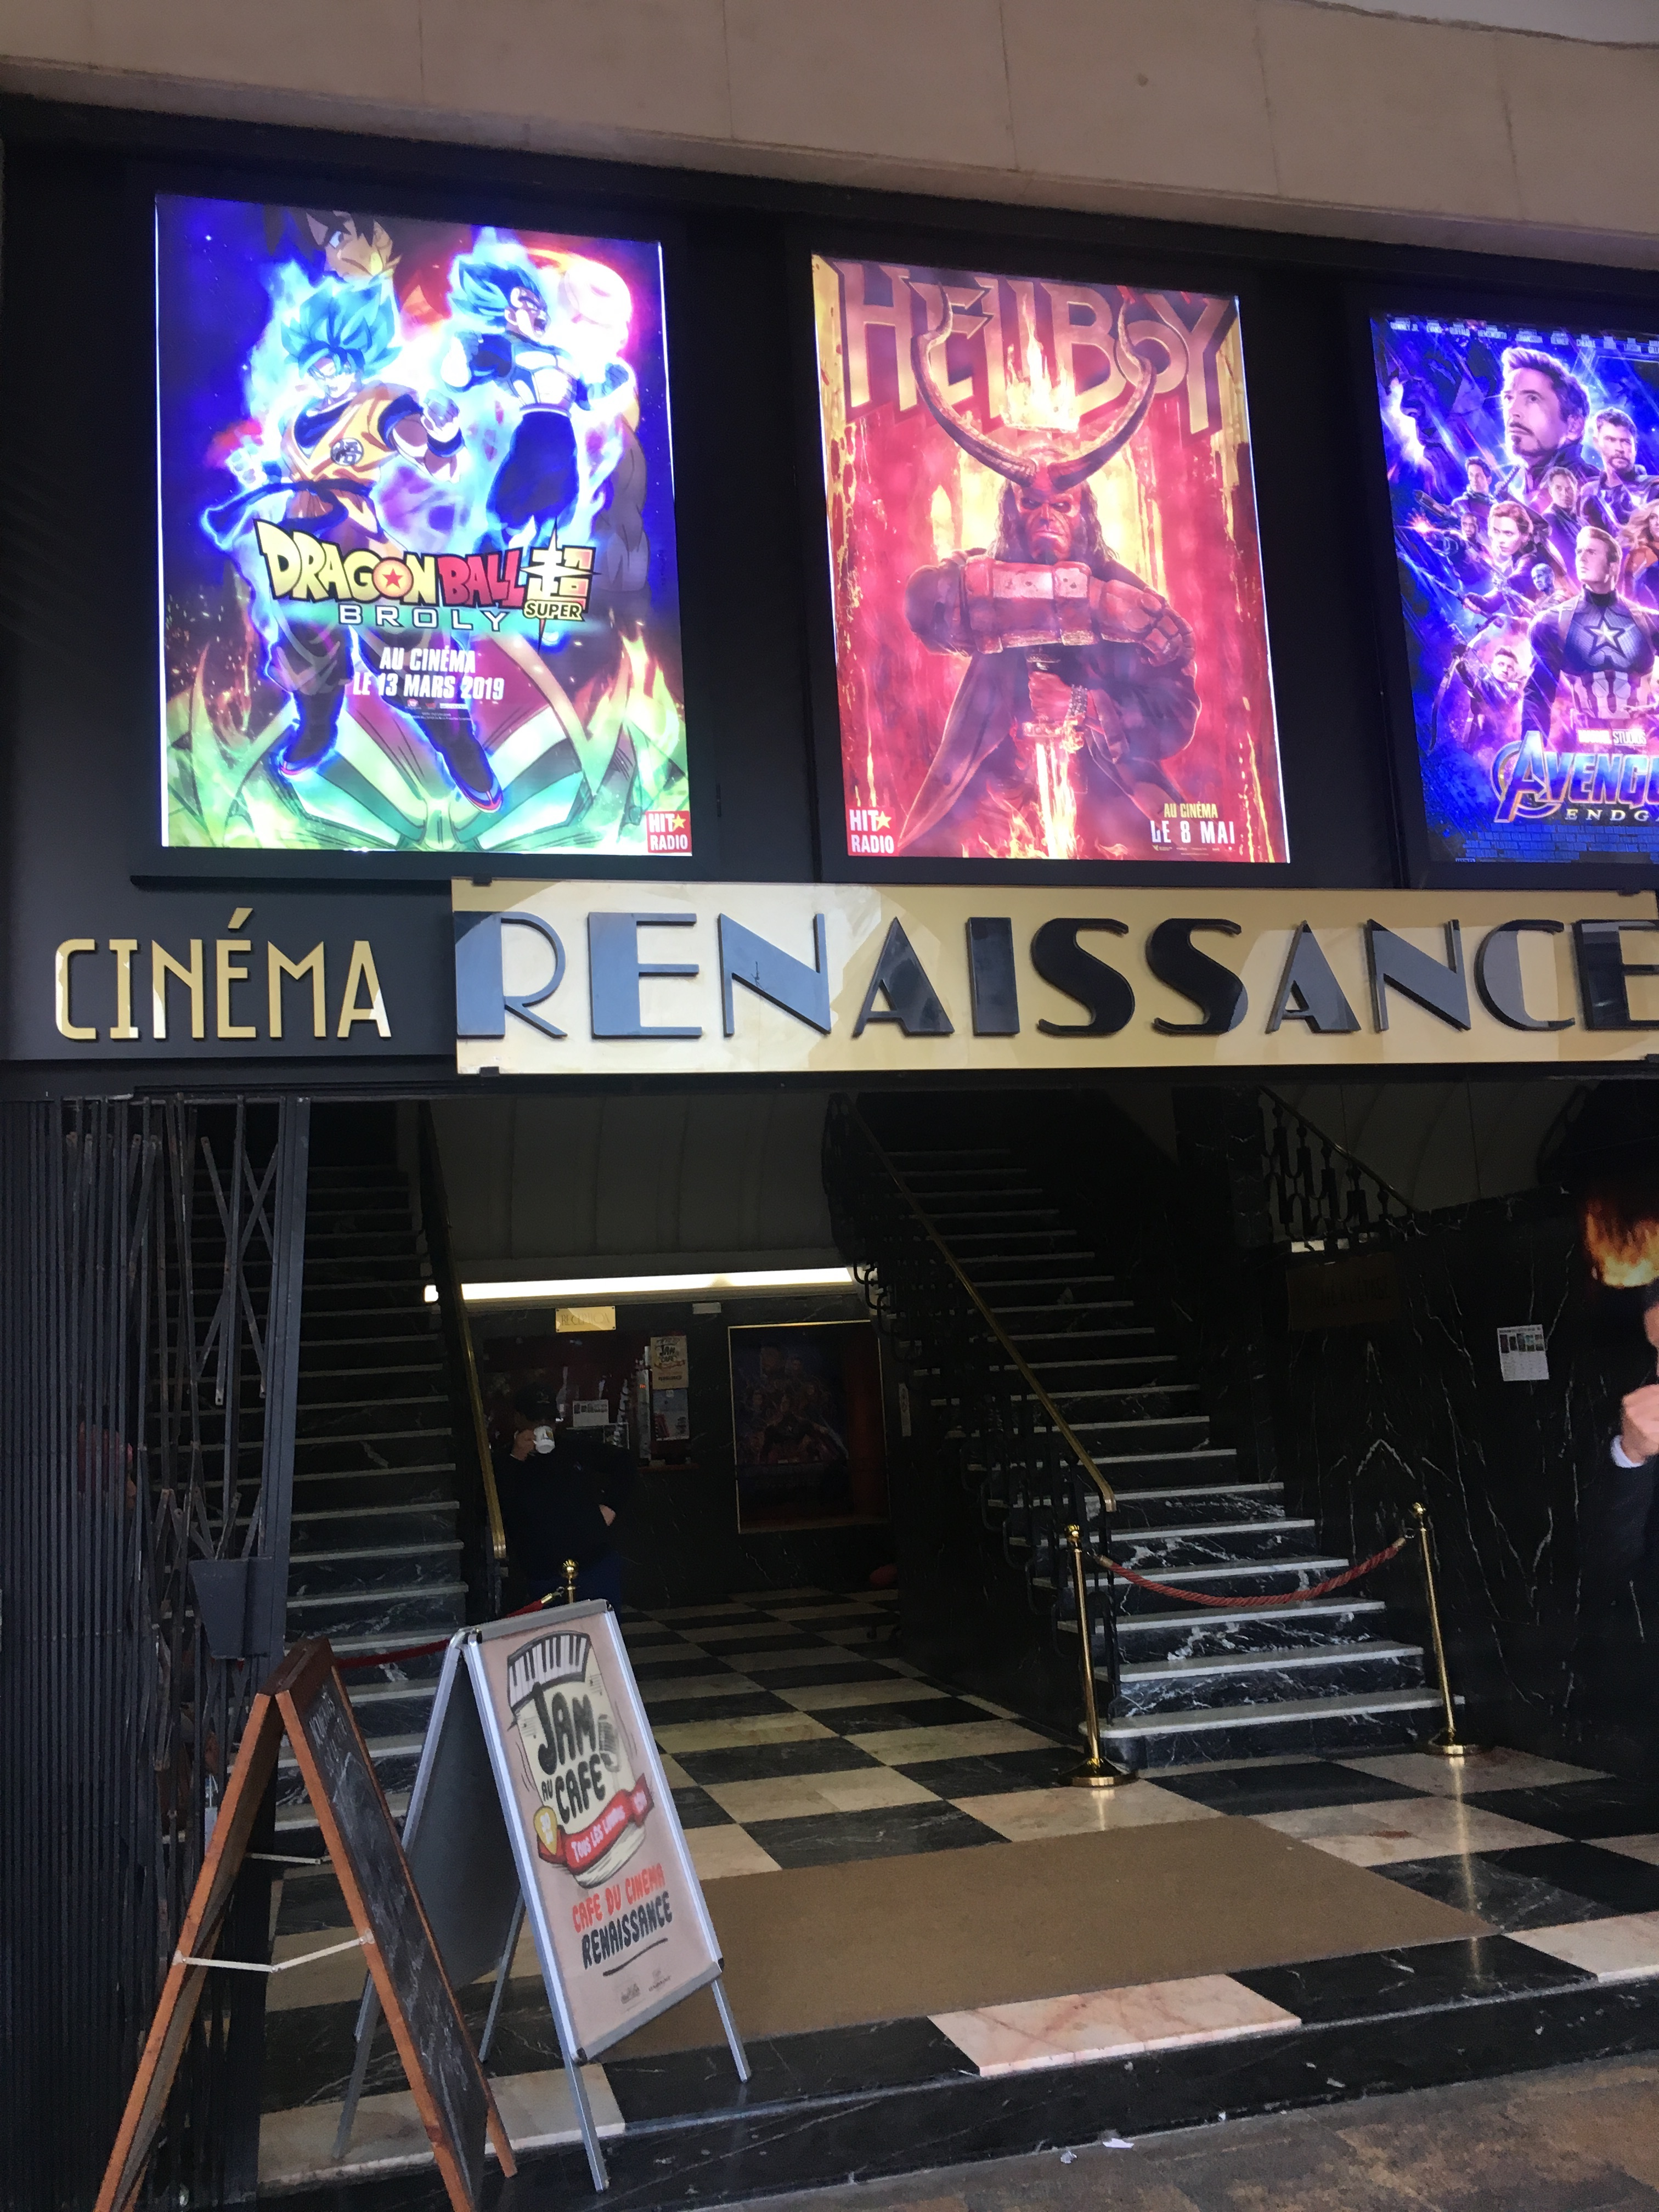 Outside the Renaissance movie theater and café